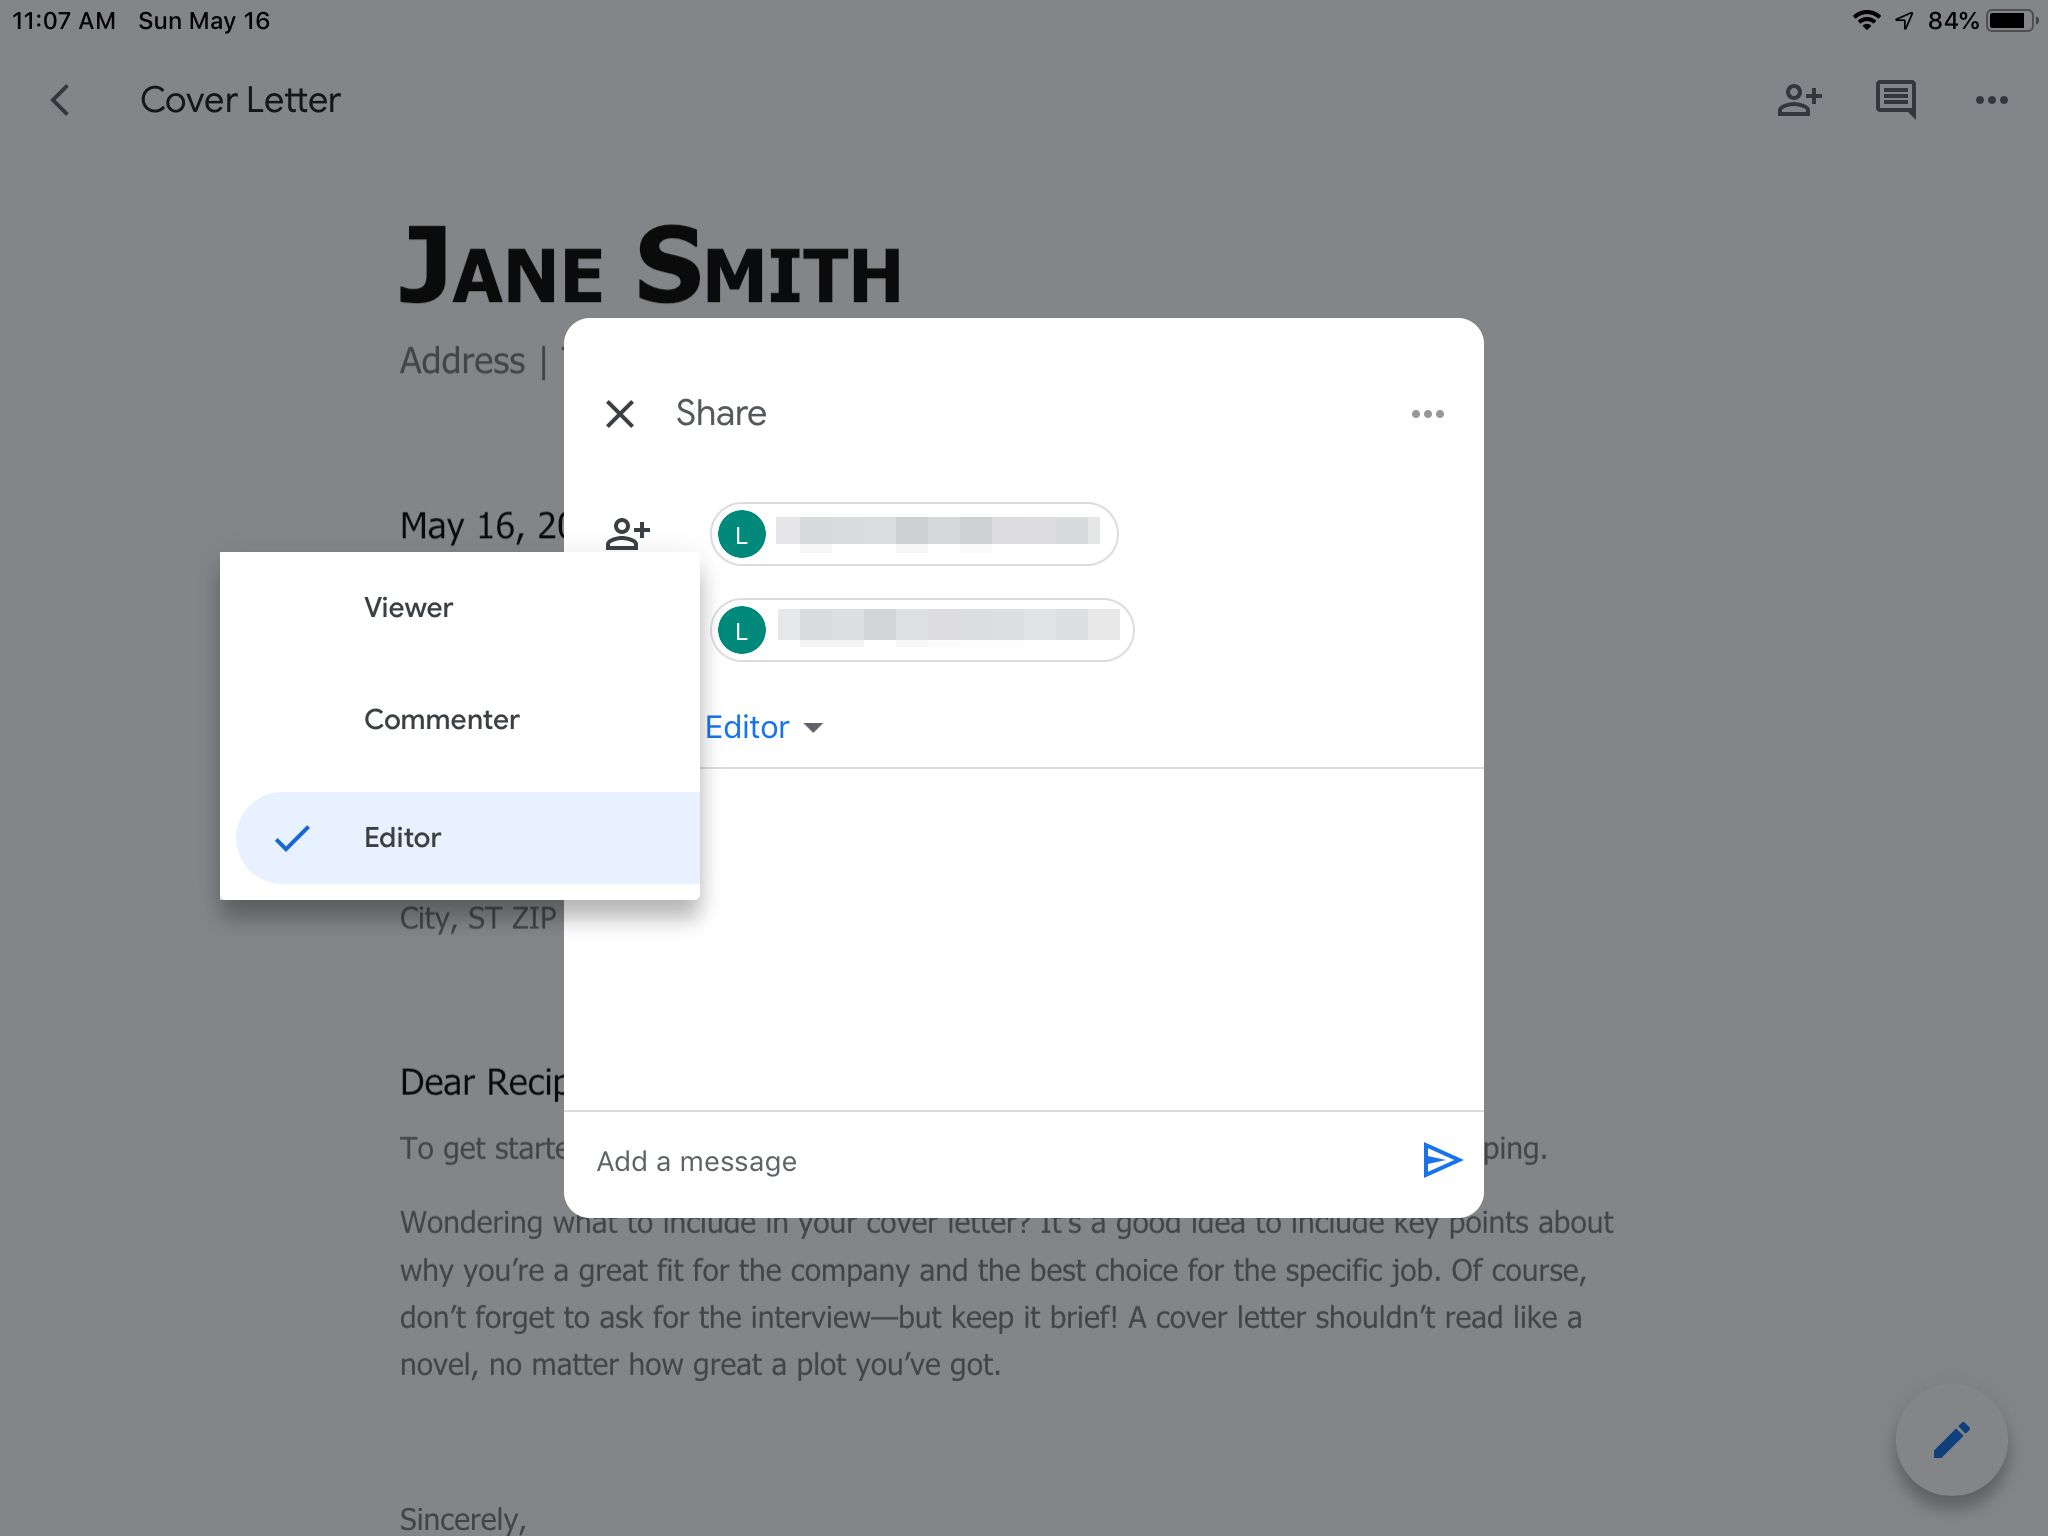 Sharing pane showing assigned privileges